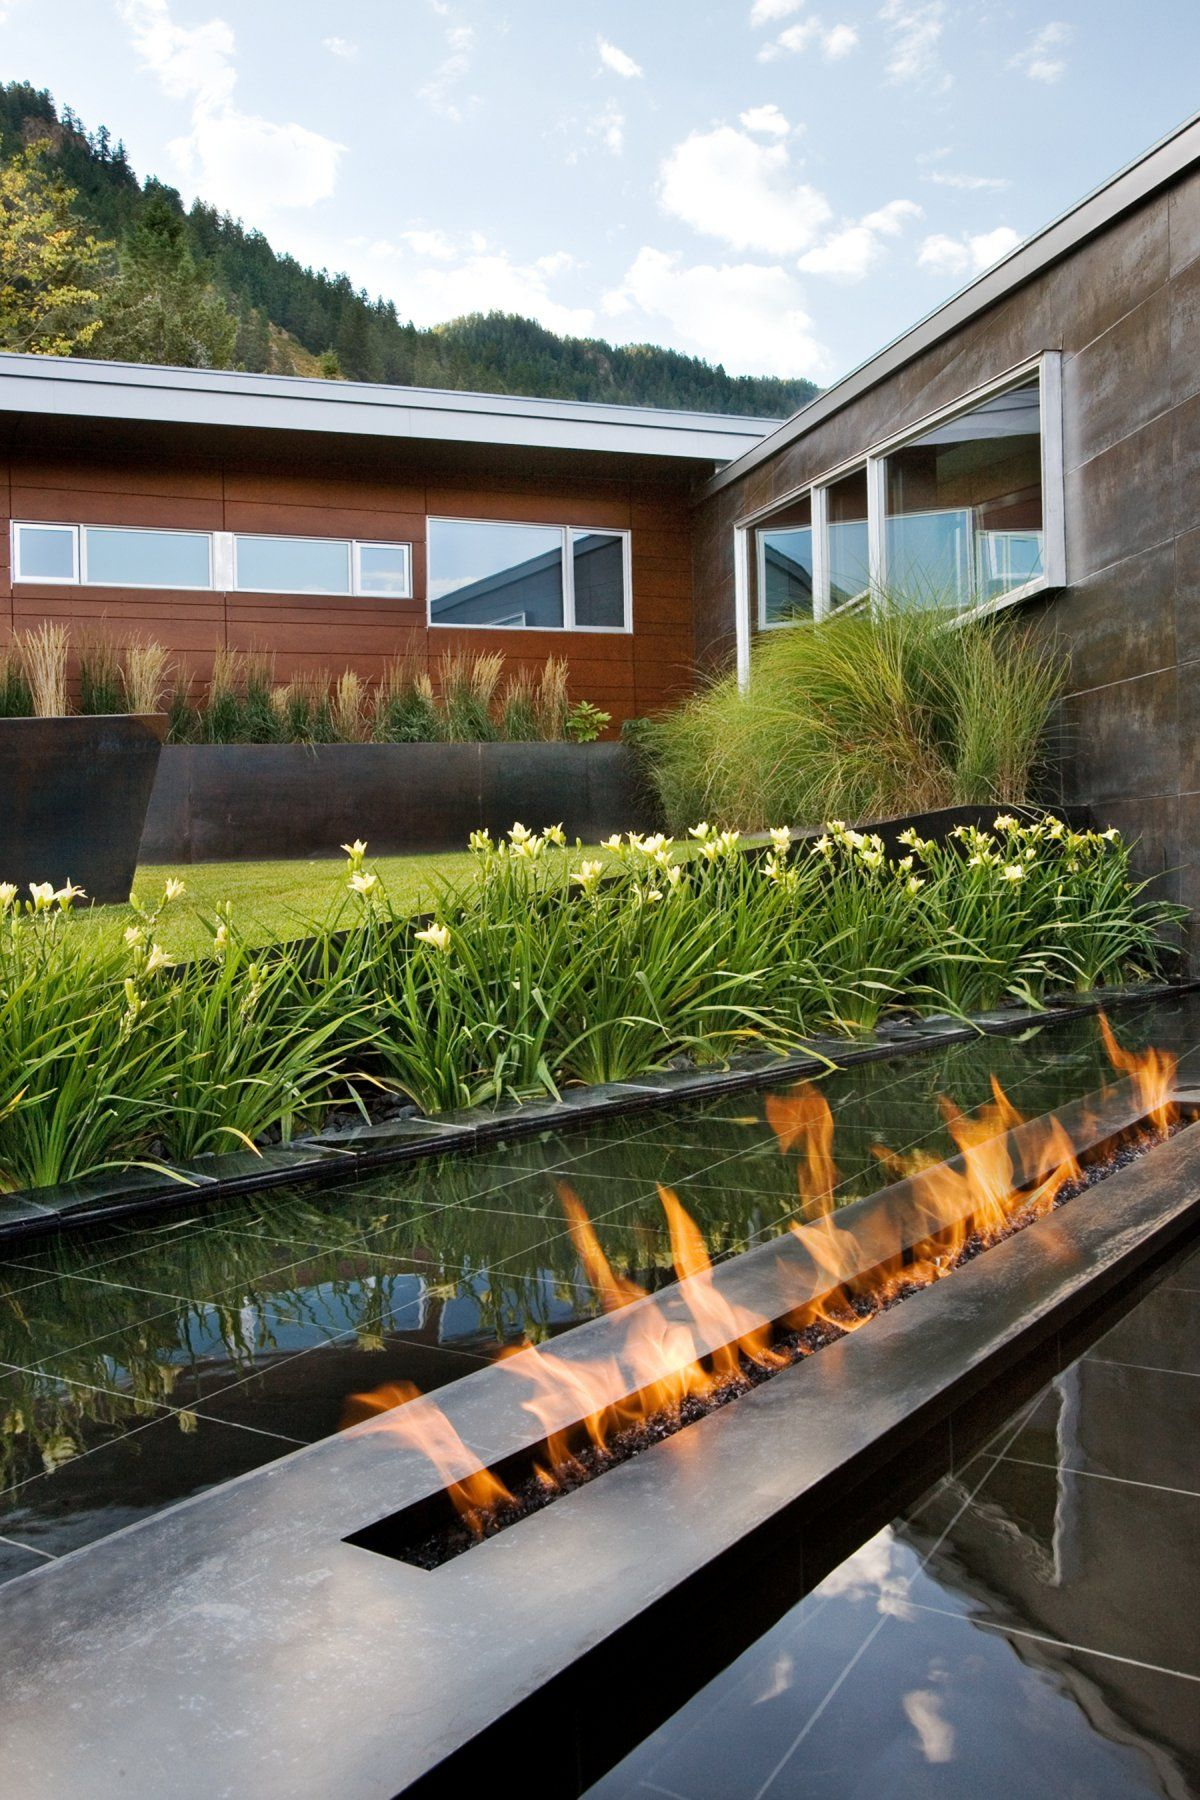 Edge house by studio b architects unusual stoves u fireplaces from